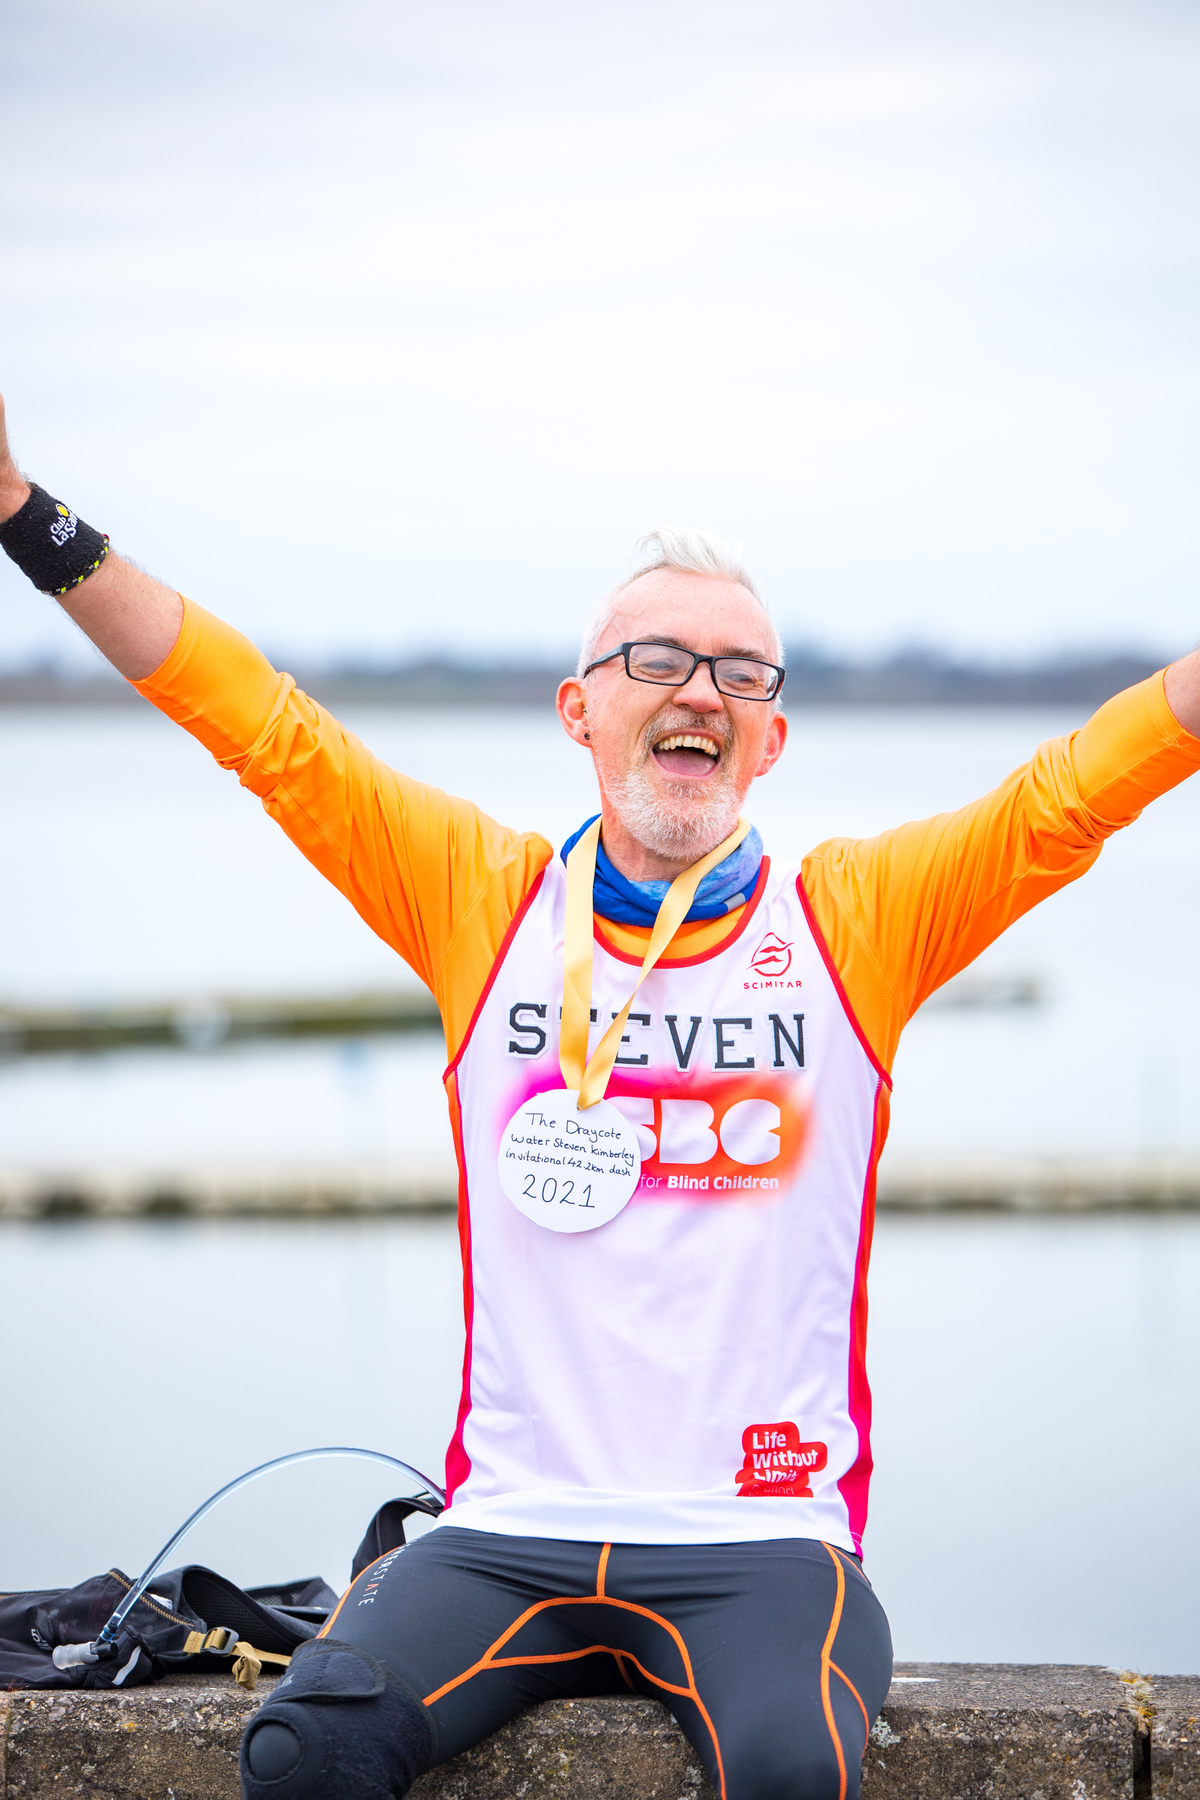 Steven is photographed holding his arms aloft and smiling, in front of the lake he ran around. He is wearing an RSBC running vest and has a homemade medal around his neck.